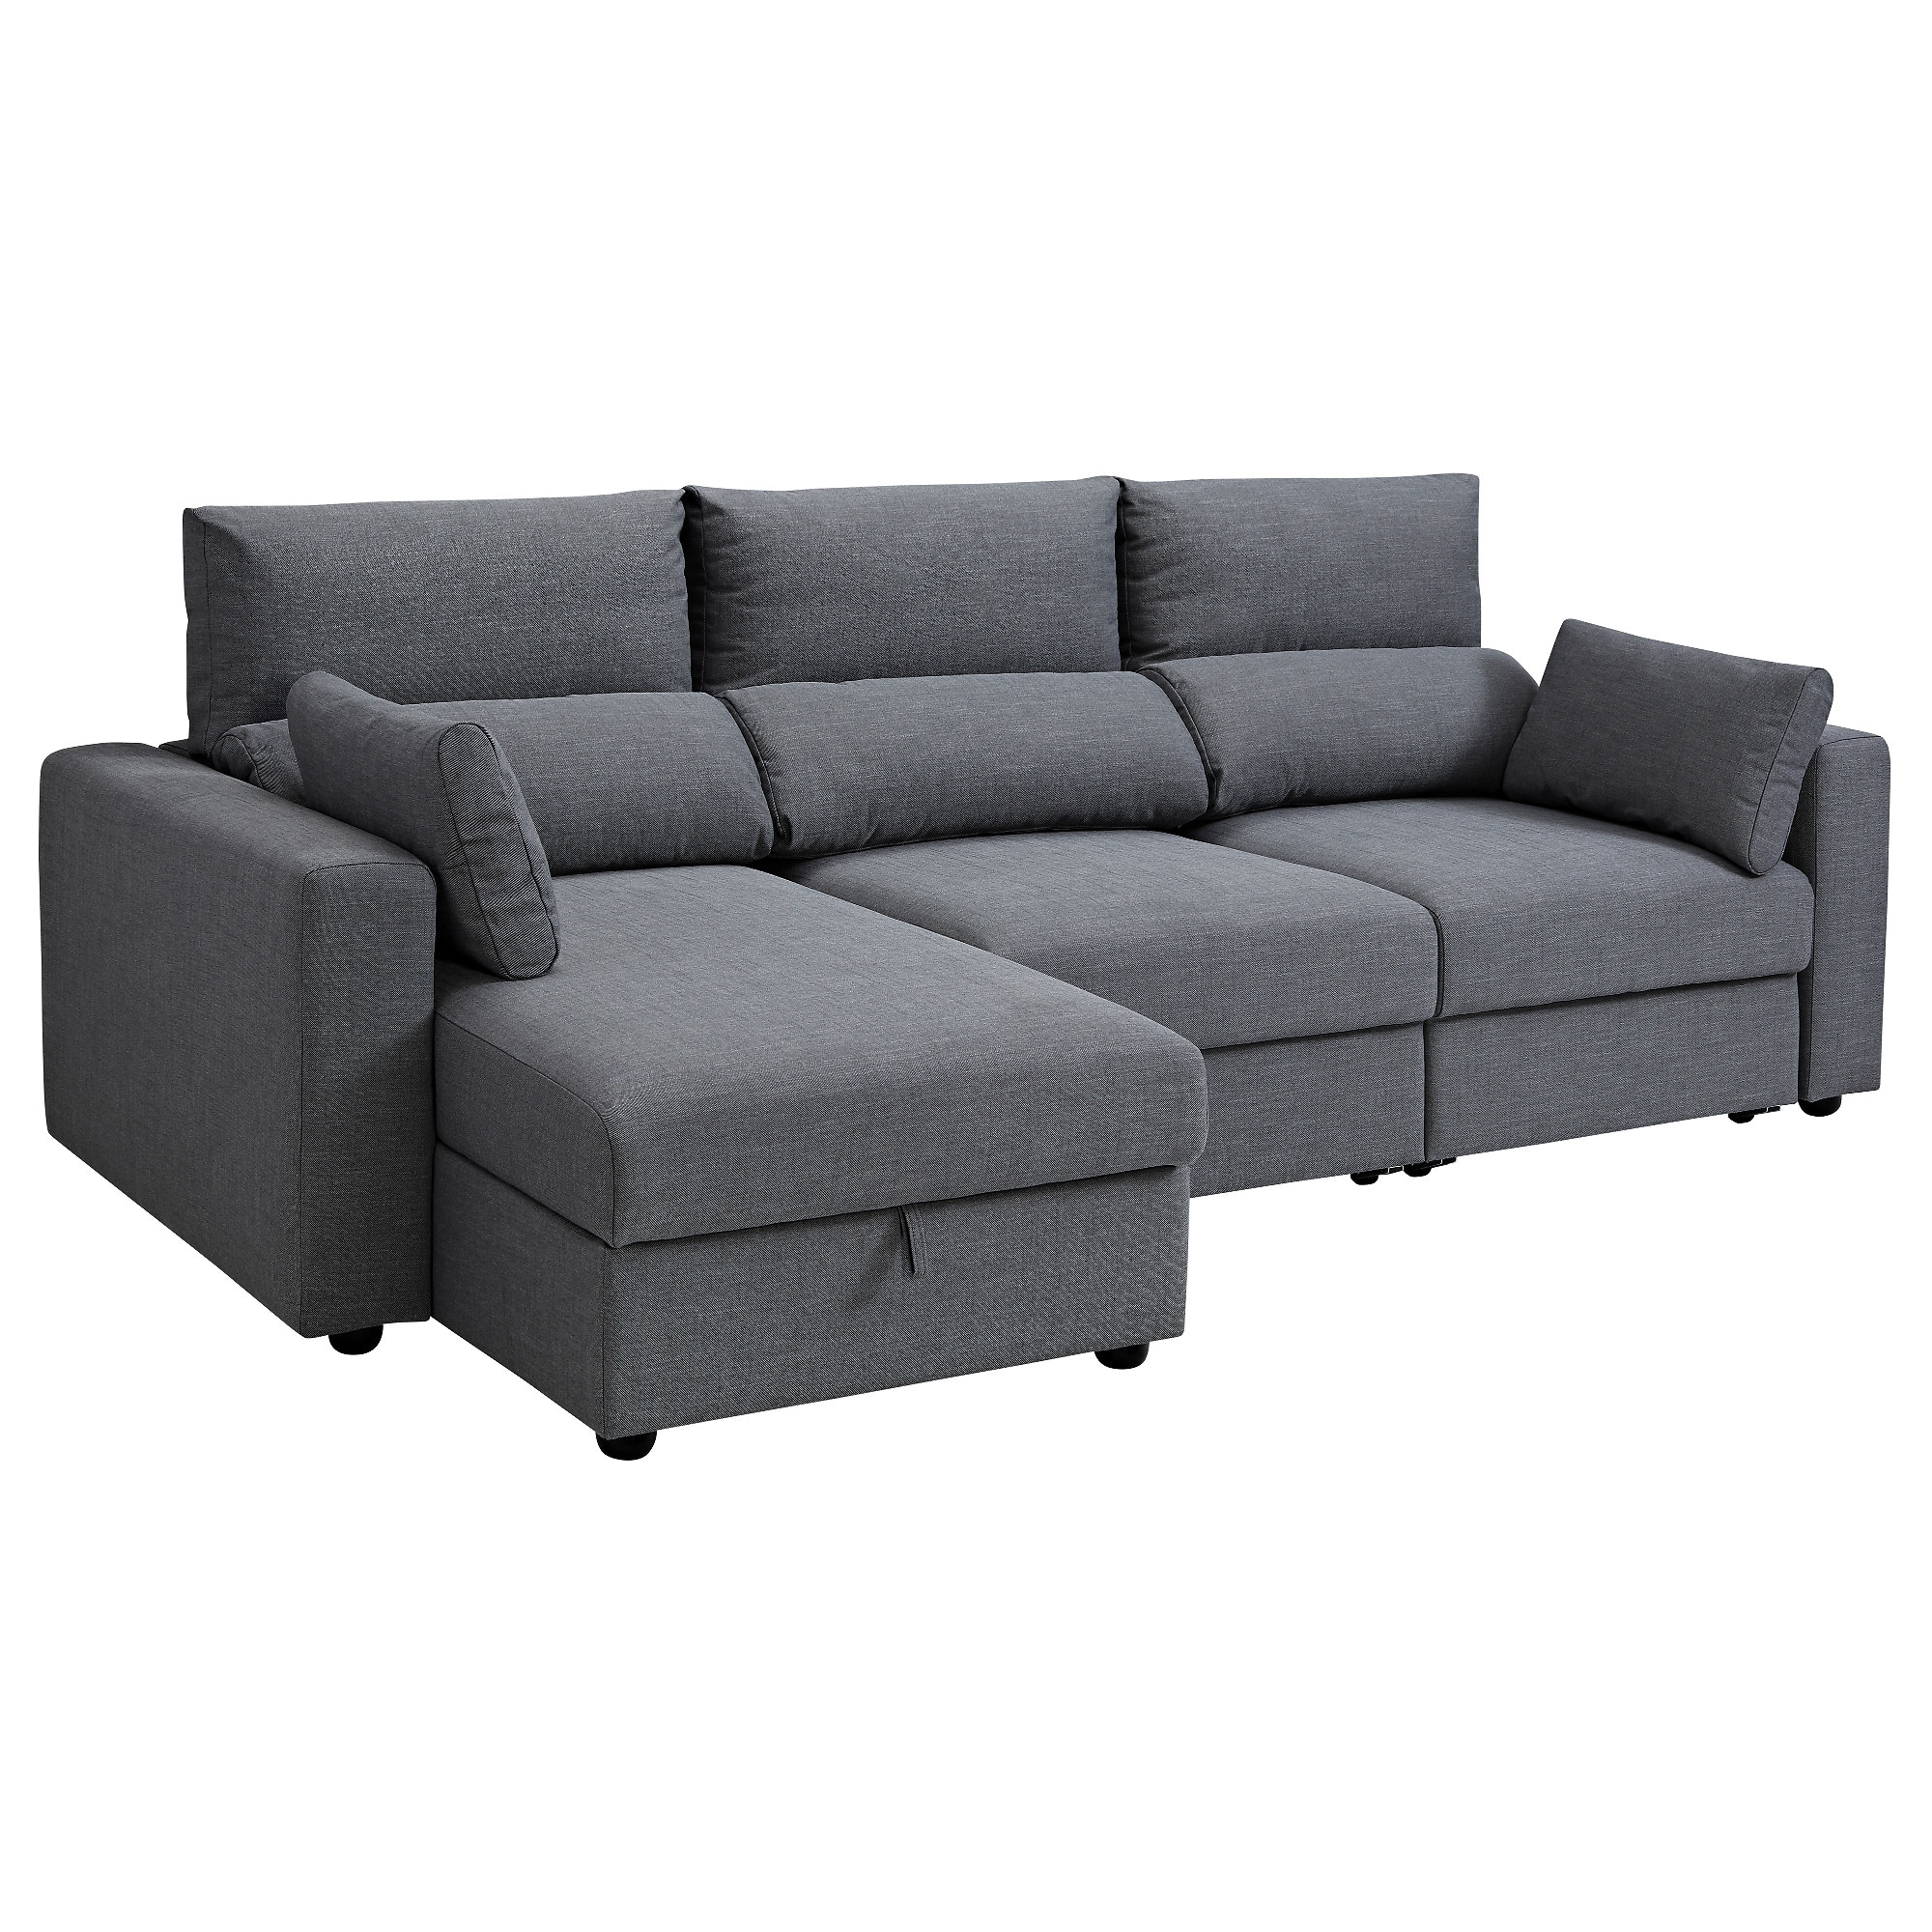 Tapizar sofa Precio Madrid 9ddf Eskilstuna 3 Seat sofa with Chaise Longue nordvalla Dark Grey Ikea